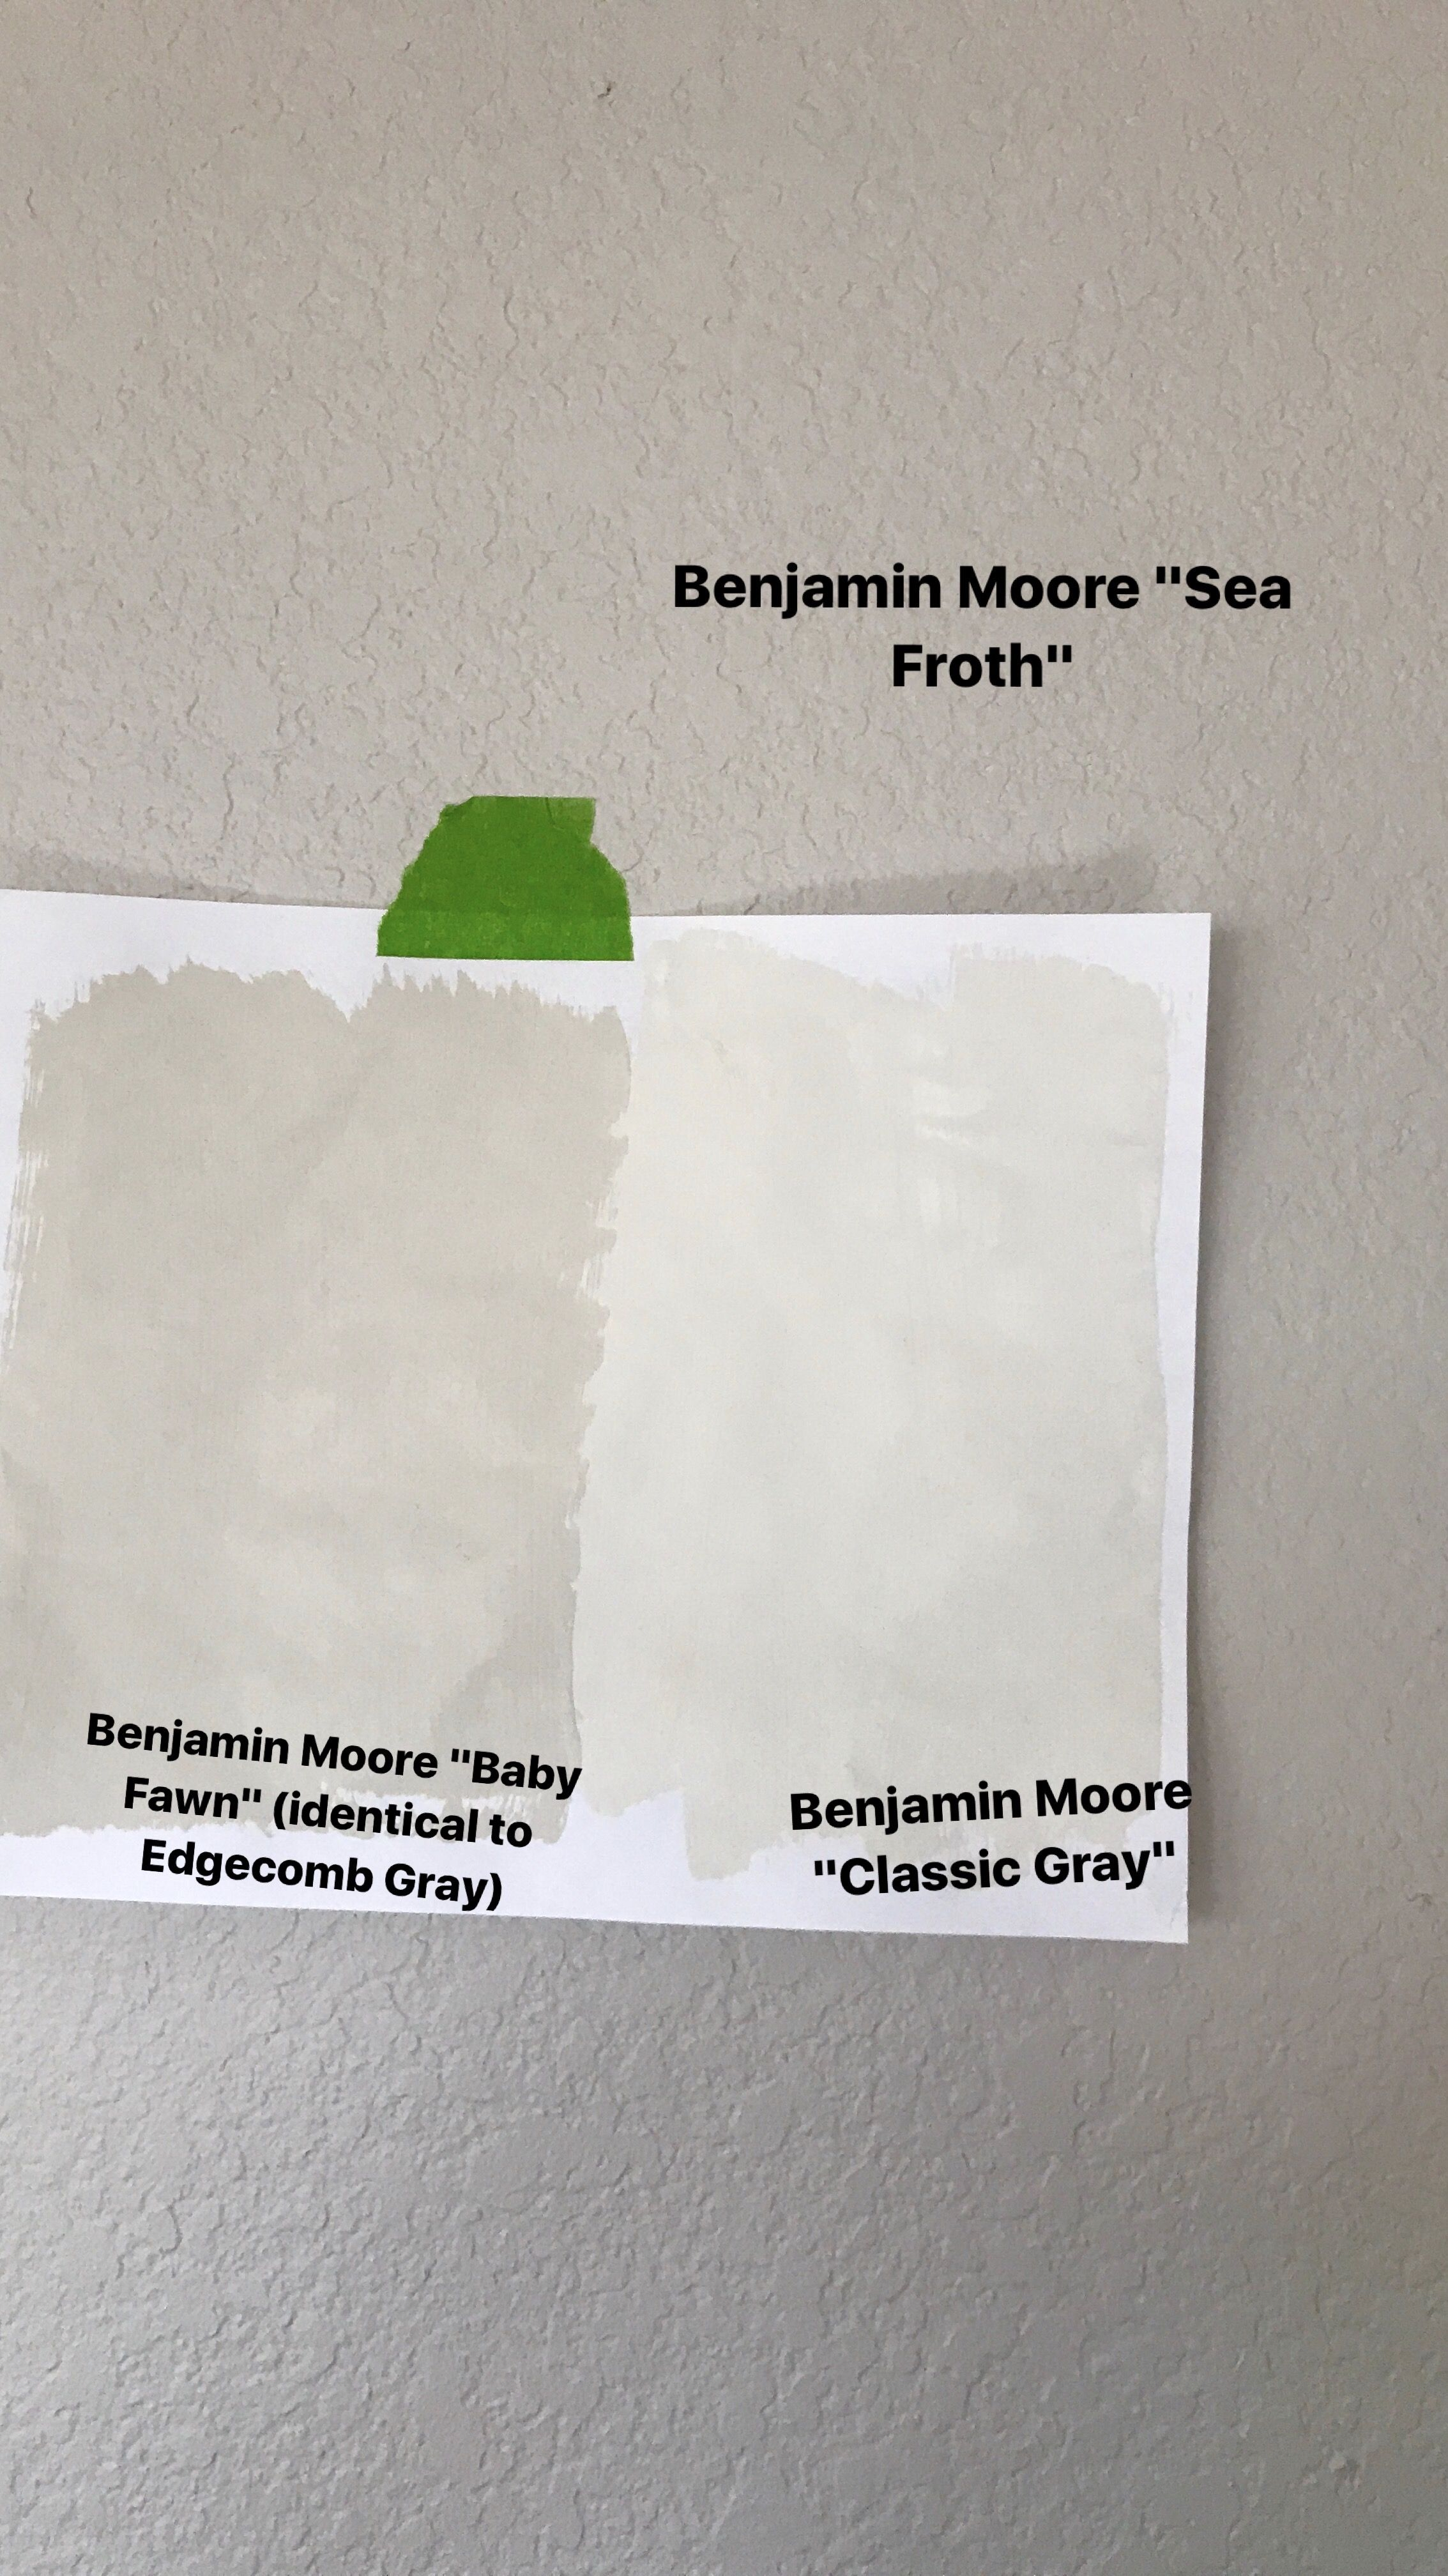 Benjamin Moore Sea Froth Vs Clic Gray Baby Fawn Edgecomb Paint